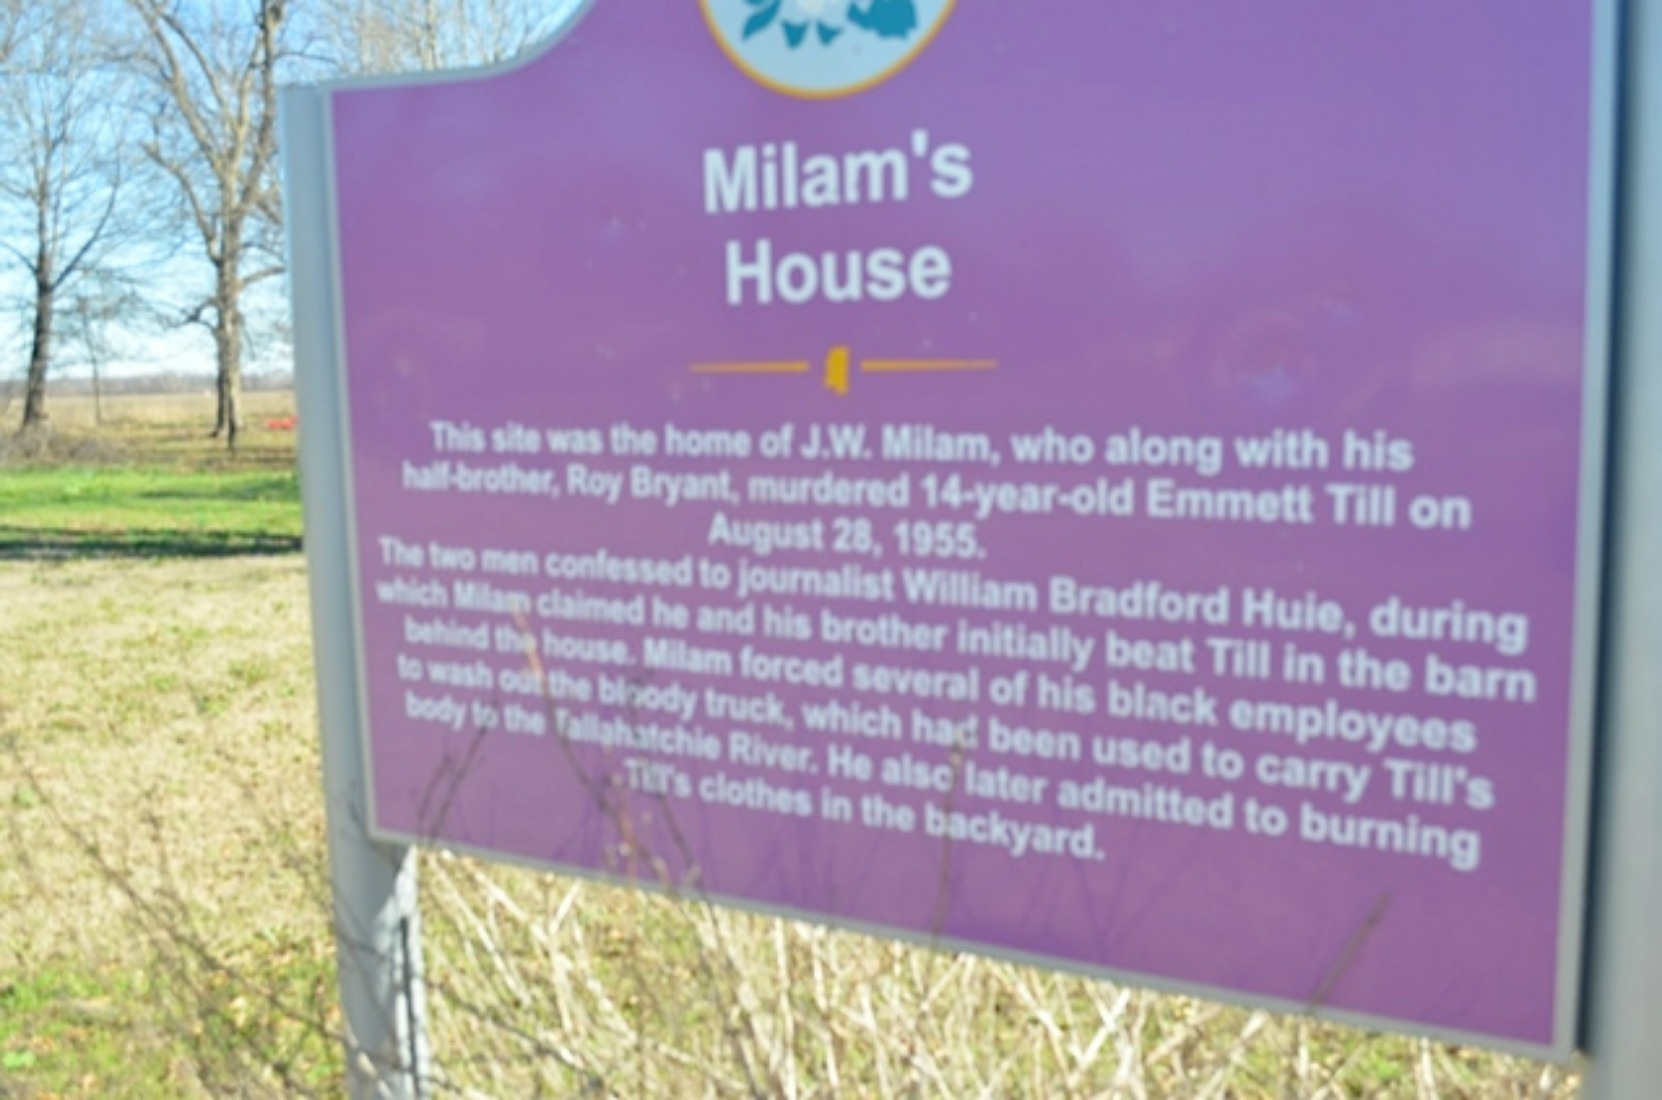 Milam's House sign, at the site of the former house of J.W. Milam, one of the two men who murdered Emmett Till in August 1955, Glendora, Mississippi (courtesy of Keith Petersen)